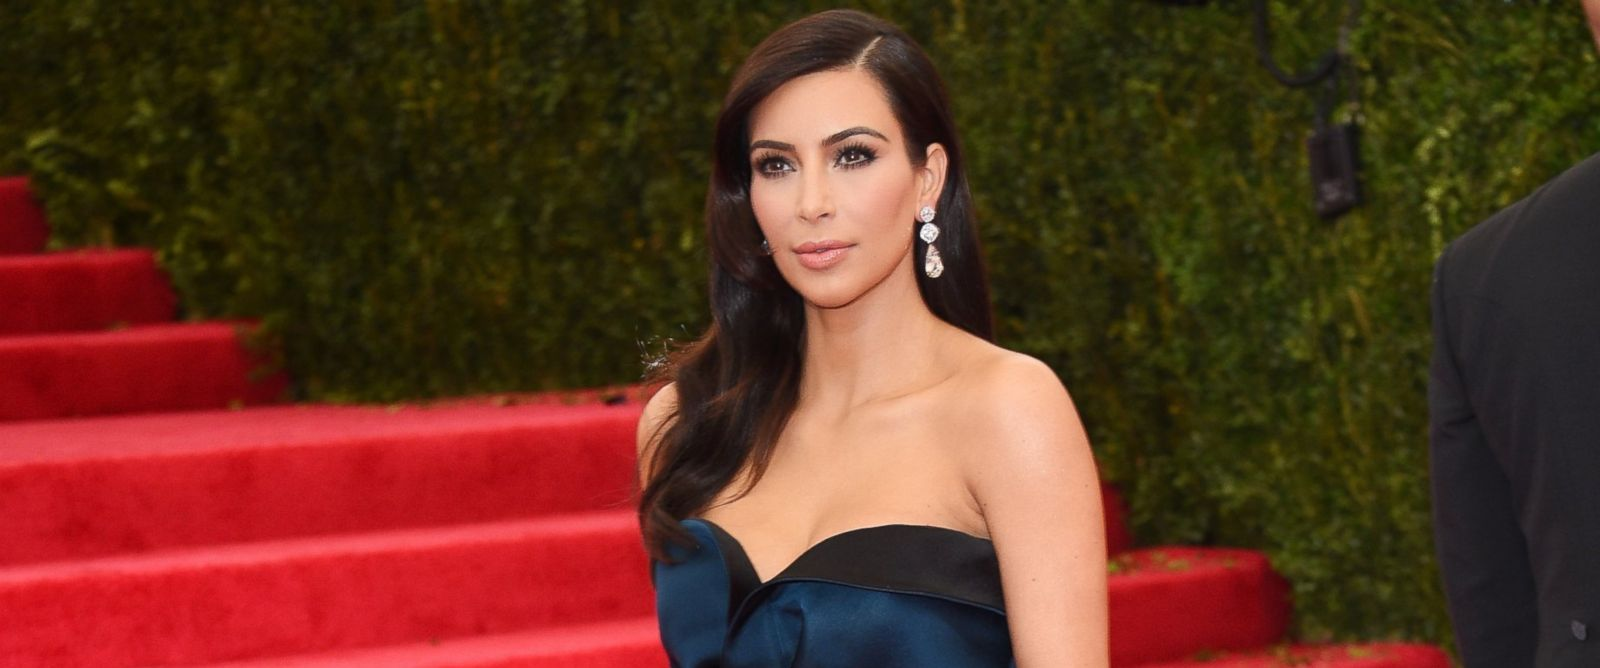 """PHOTO: Kim Kardashian attends the """"Charles James: Beyond Fashion"""" Costume Institute Gala at the Metropolitan Museum of Art on May 5, 2014 in New York City."""